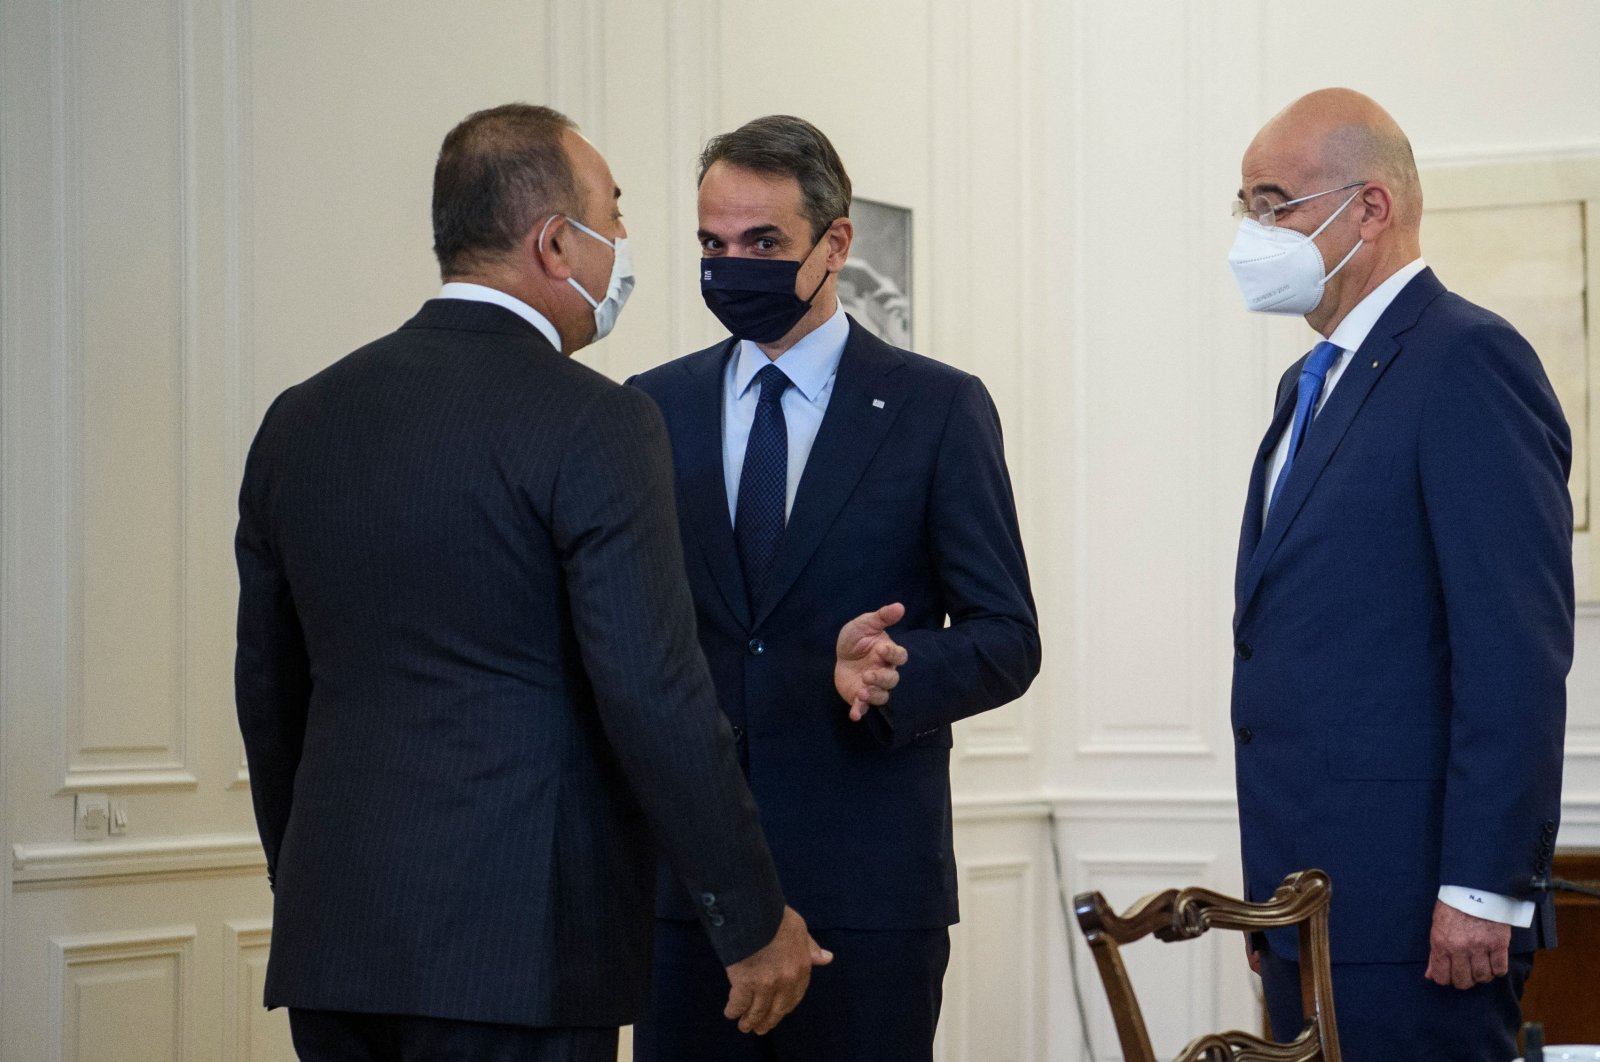 Foreign Minister Melvut Cavusoglu (L) speaks with Greek Prime Minister Kyriakos Mitsotakis (C) and Foreign Minister Nikos Dendias (R) before their meeting in Athens, Greece, May 31, 2021. (AFP Photo)